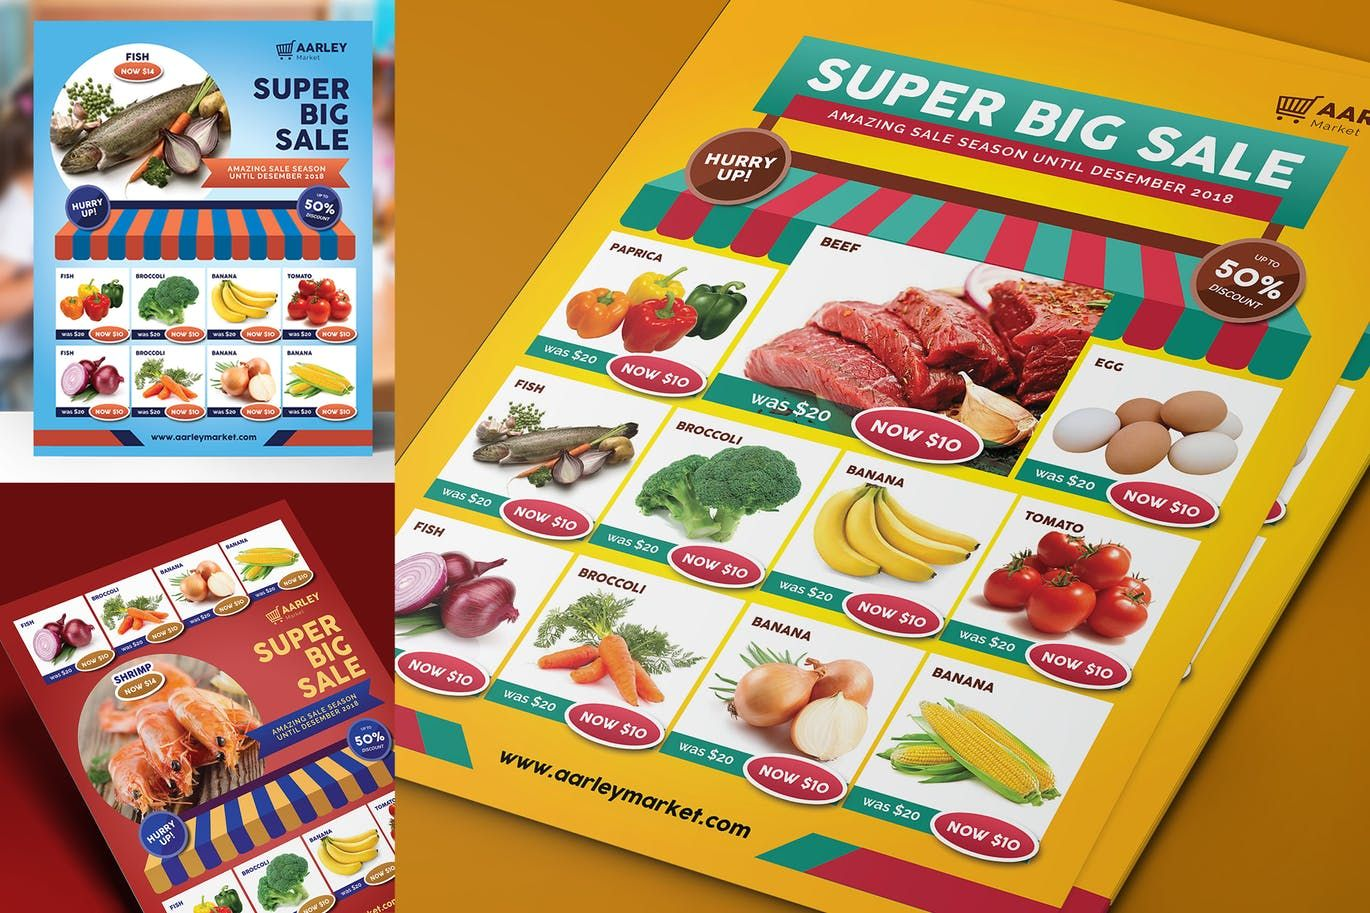 Supermarket Product Promotion Flyer Template Psd Letter Size 8 5 11 Inches Bleed Area 3 Design Variation Cmyk 300 Dpi Downoad